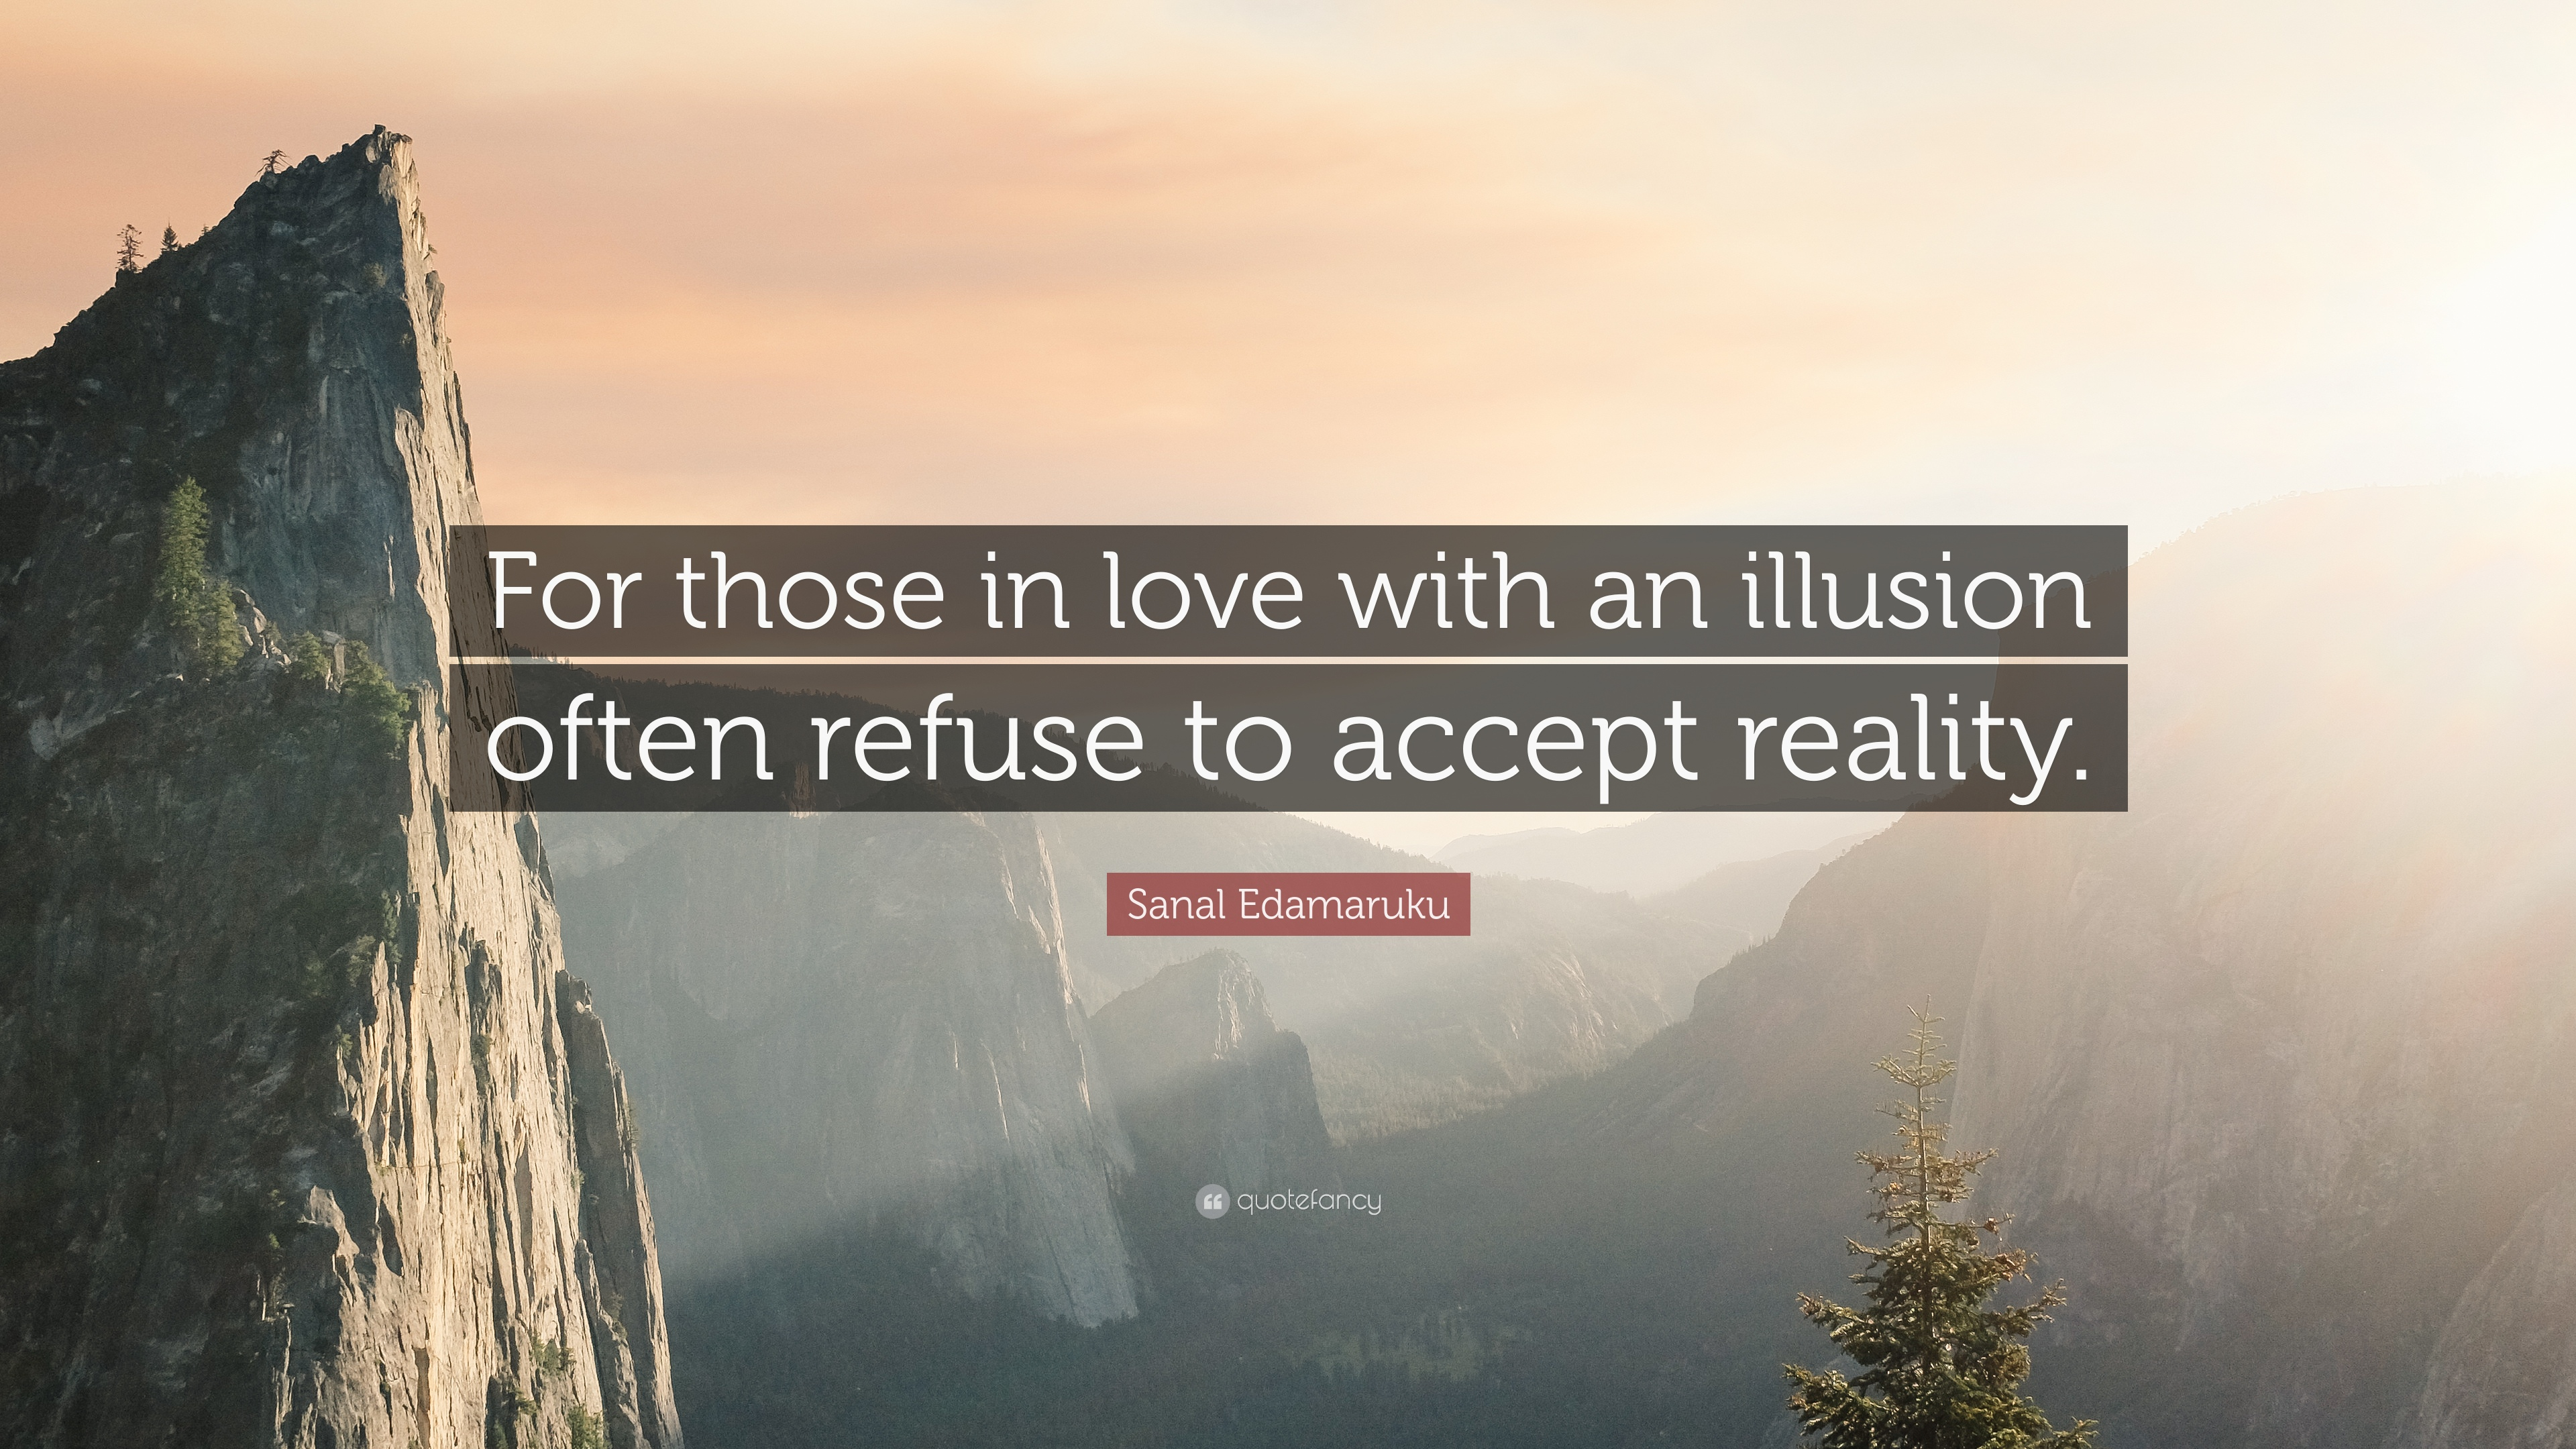 Sanal Edamaruku Quote For Those In Love With An Illusion Often